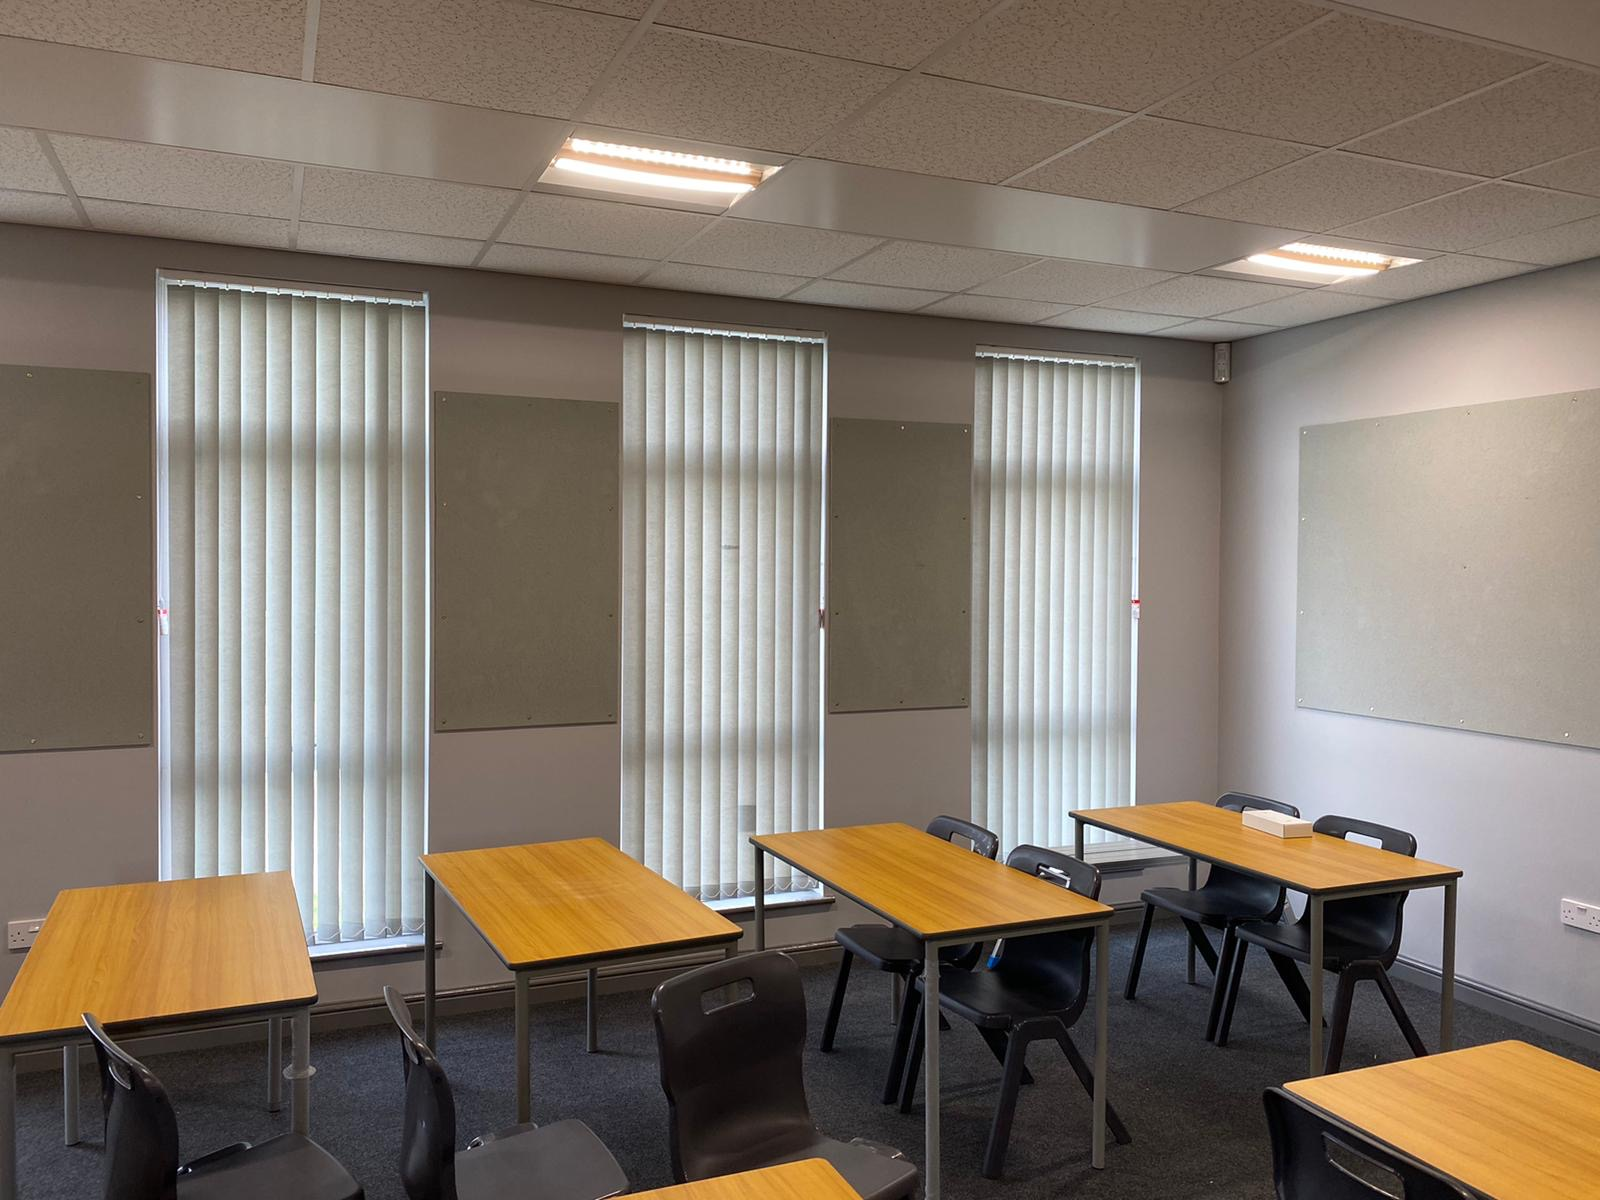 Blinds for classrooms